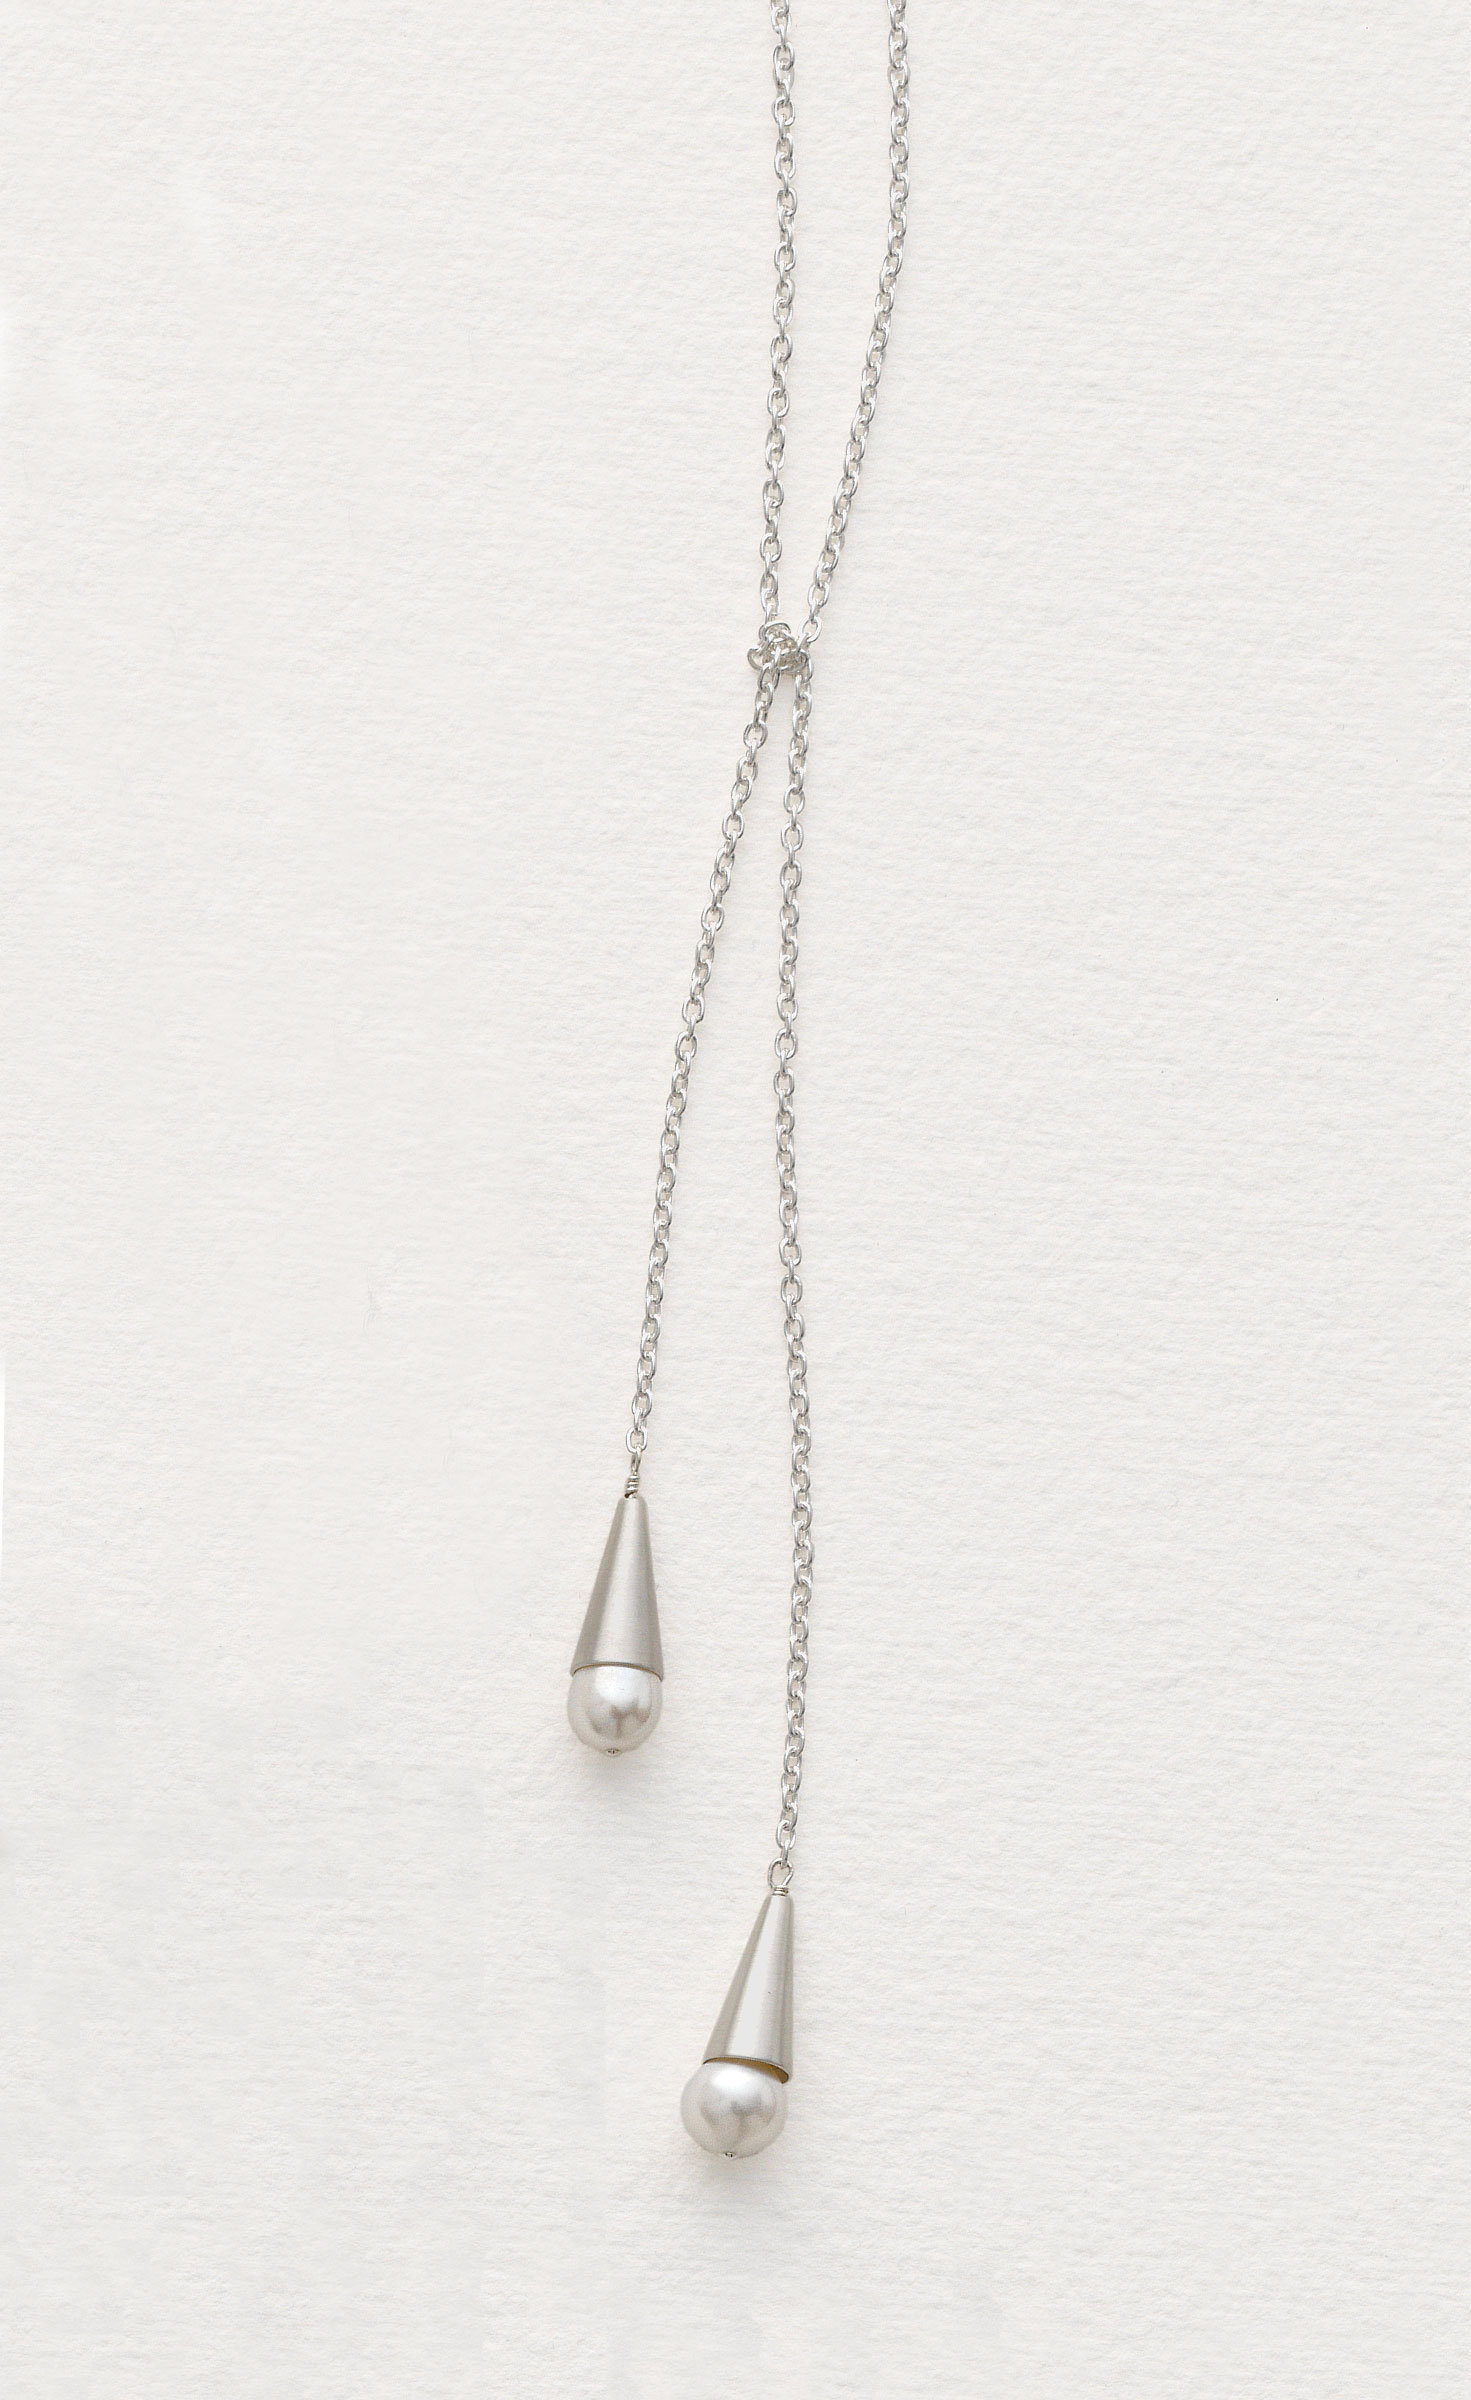 c8905a1214f2de Pearl Amp Silver Lariat By Claudia Endler Silver Amp Pearl